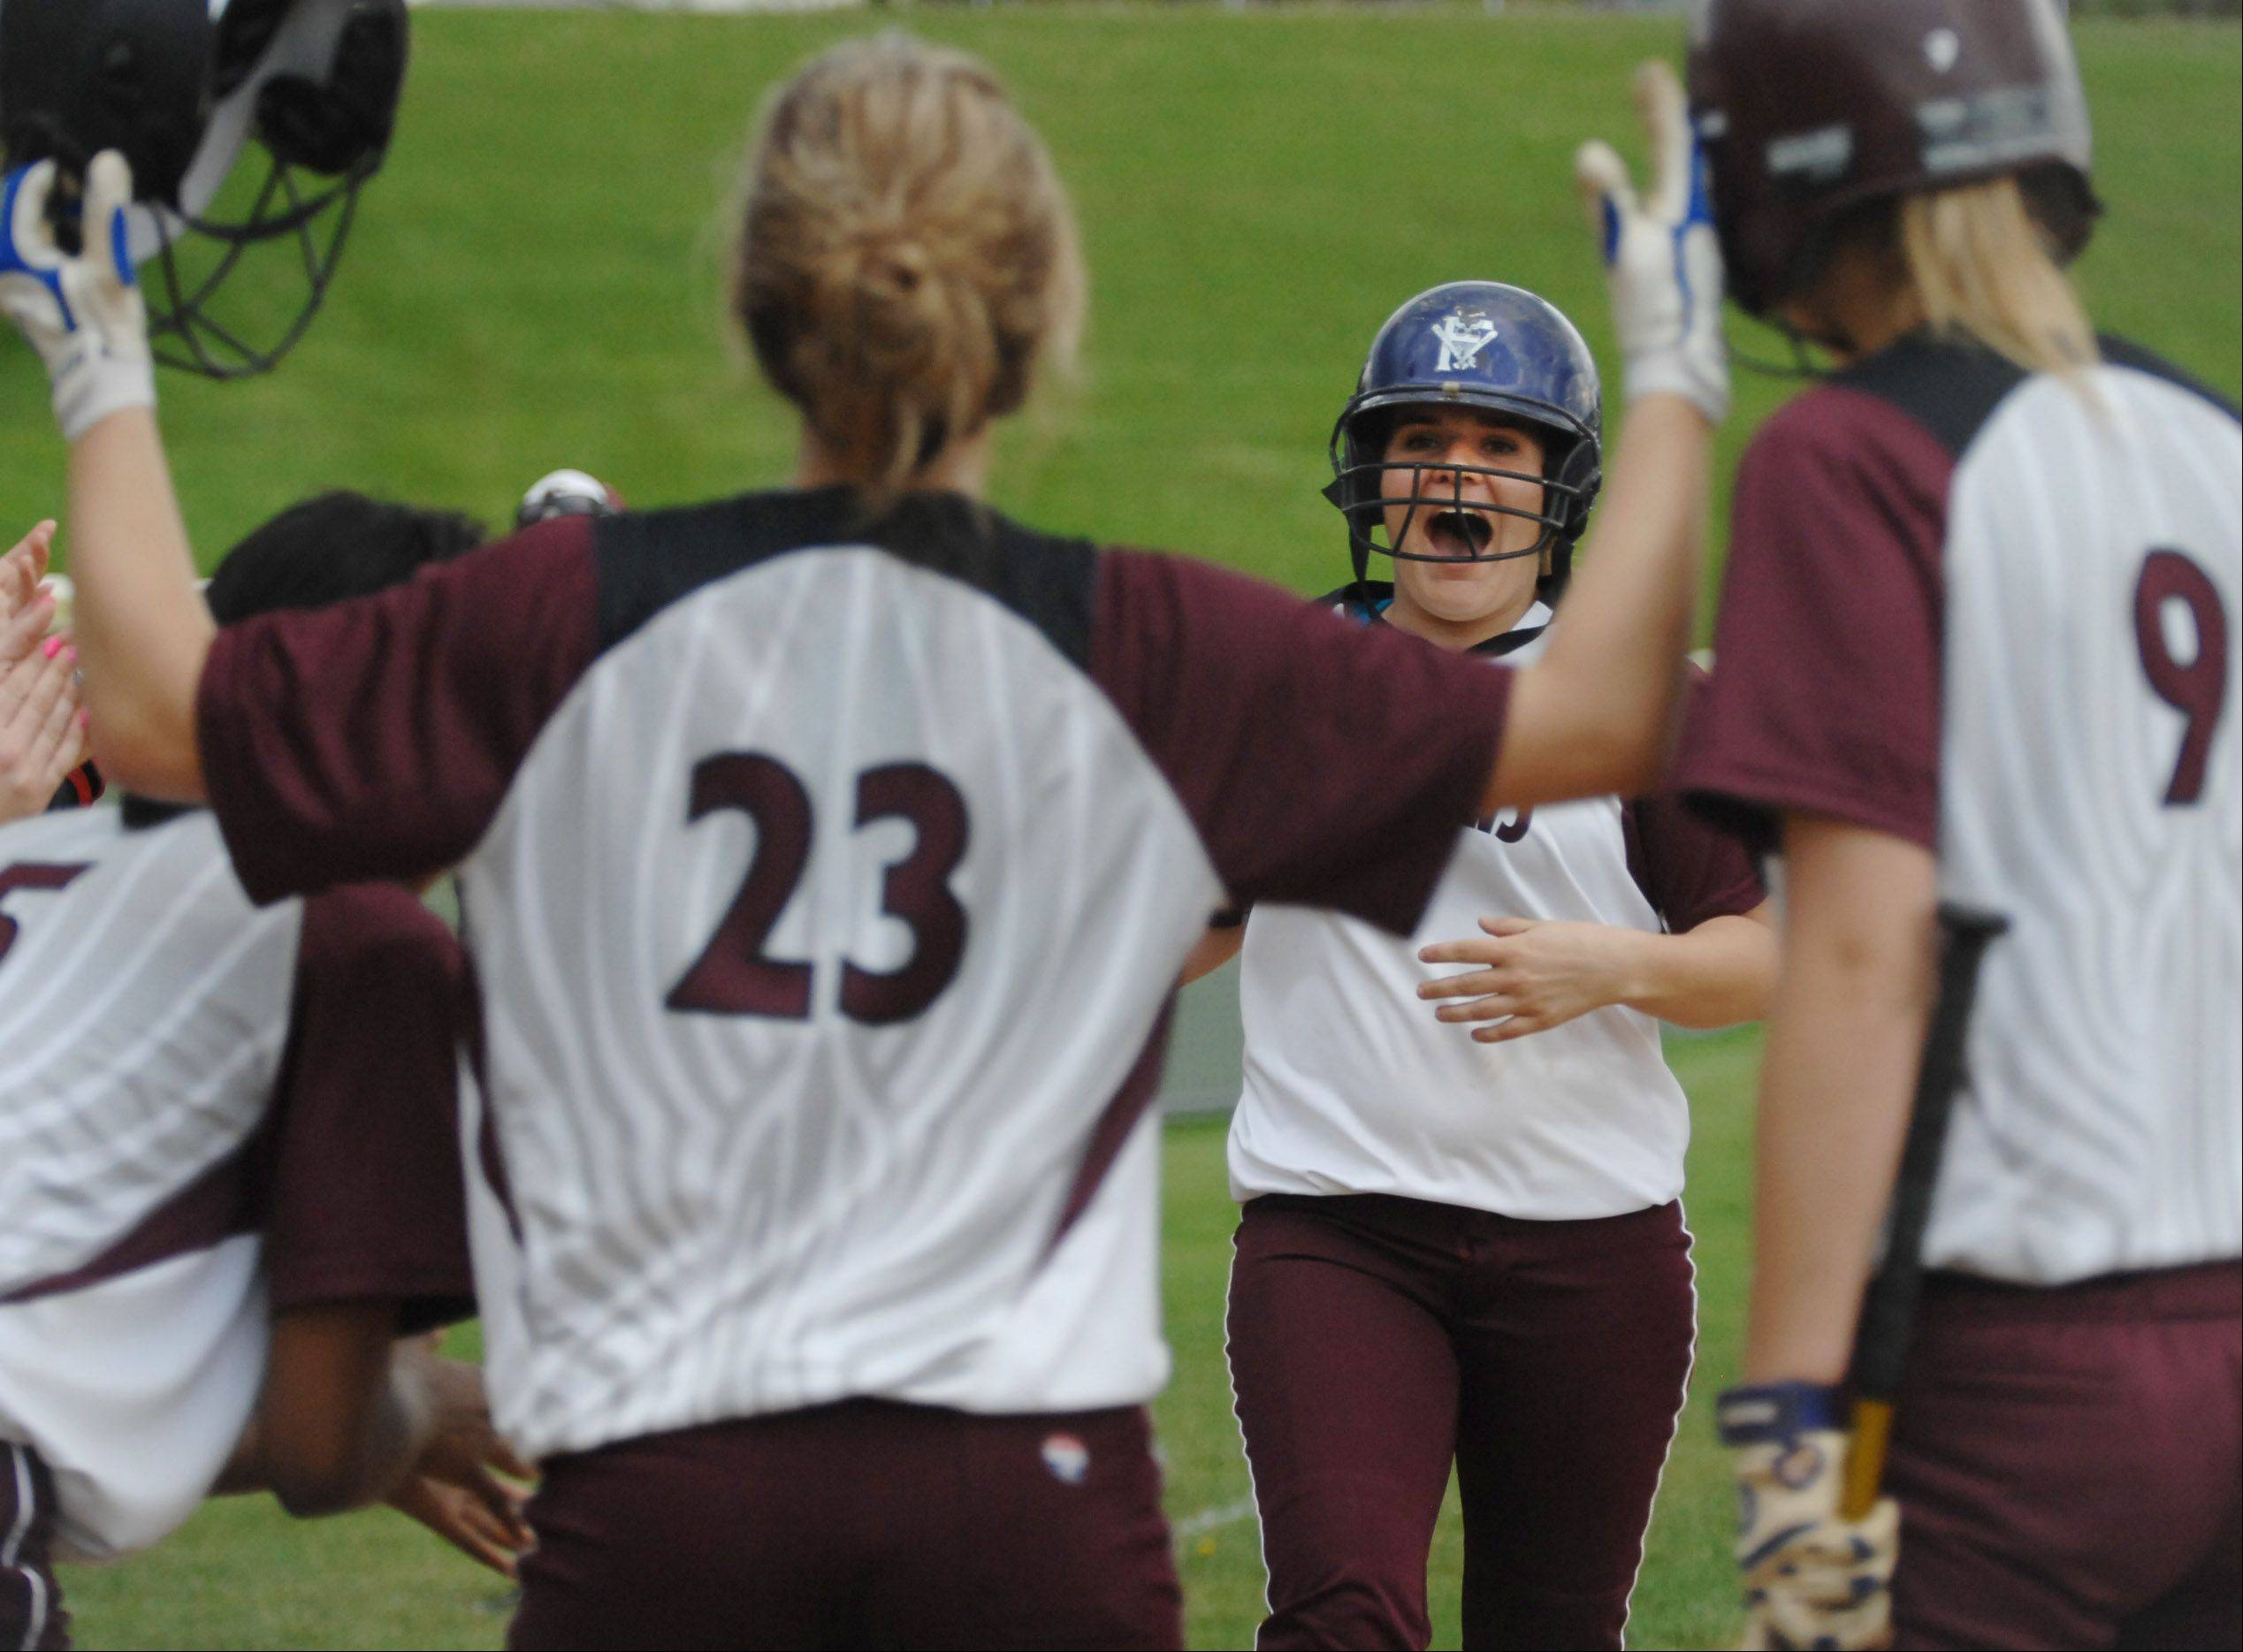 With winning pitcher Hannah Perryman (23) leading the welcoming party, Elgin sophomore Anna Eckholm celebrates as she approaches the plate after hitting a home run in the bottom of the sixth inning against Batavia Wednesday in Elgin. It was the only run of the game.